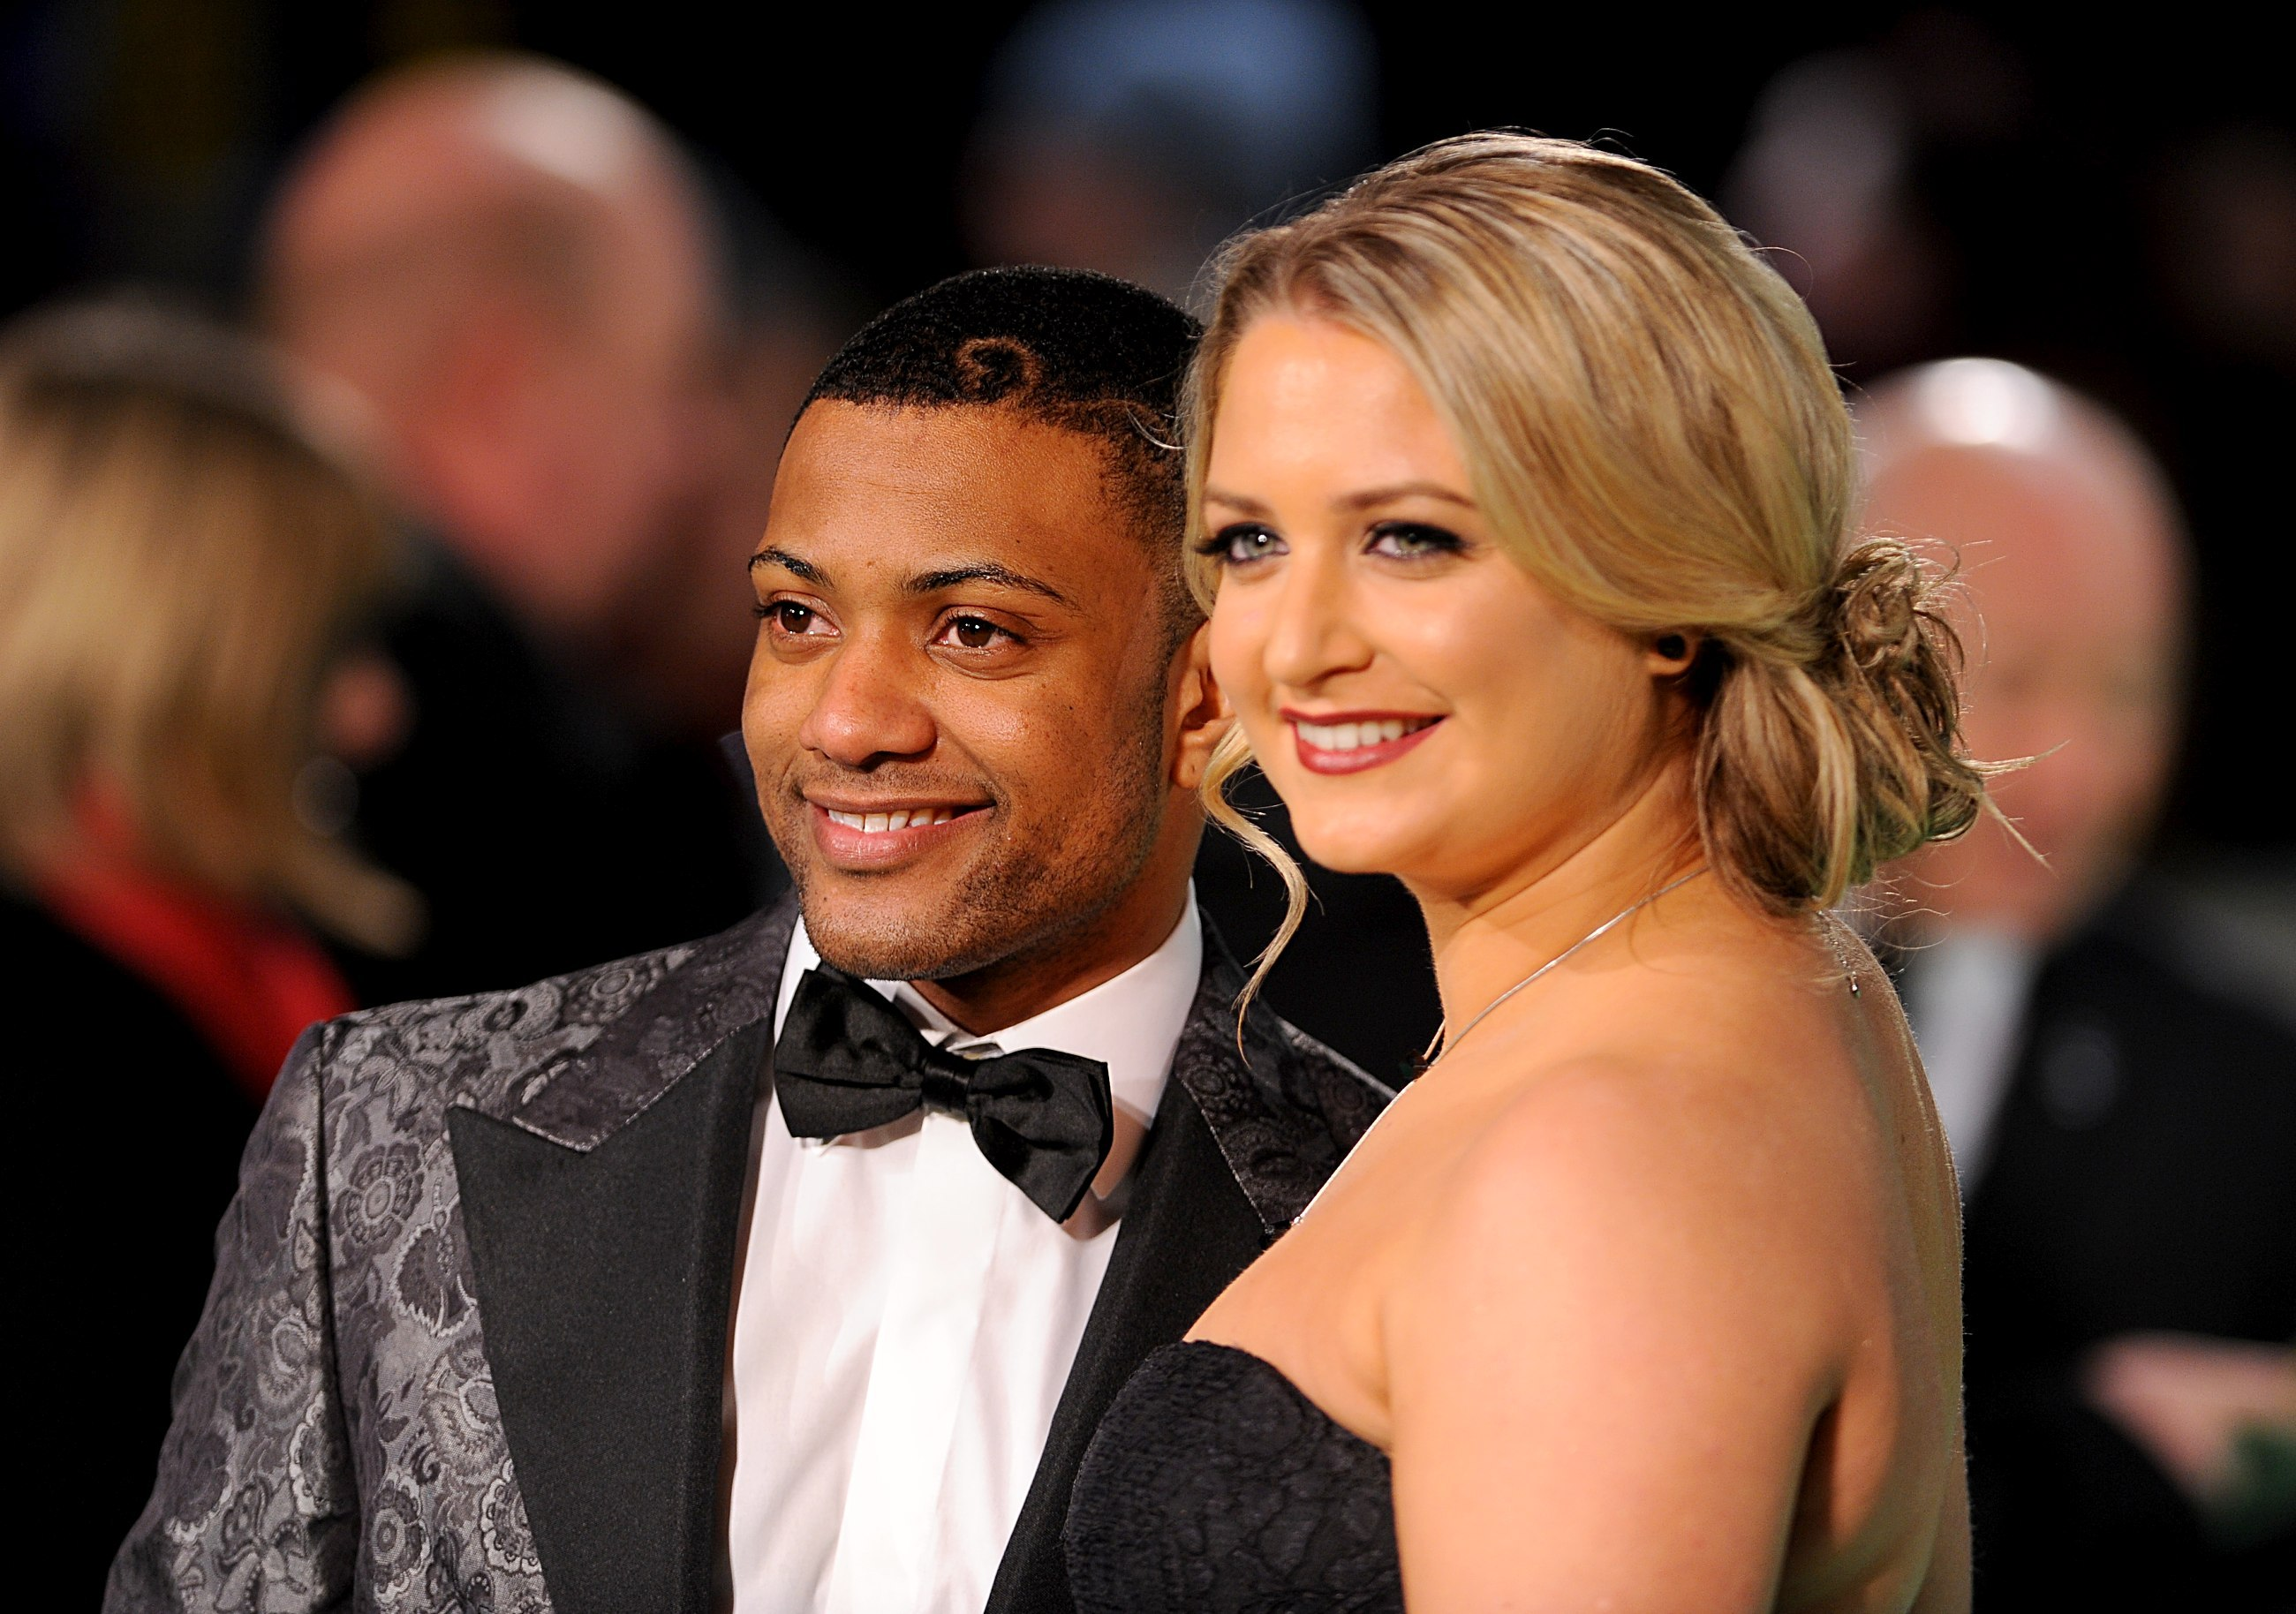 JB Gill from JLS and his girlfriend Chloe Tangney are engaged (Picture: PA)